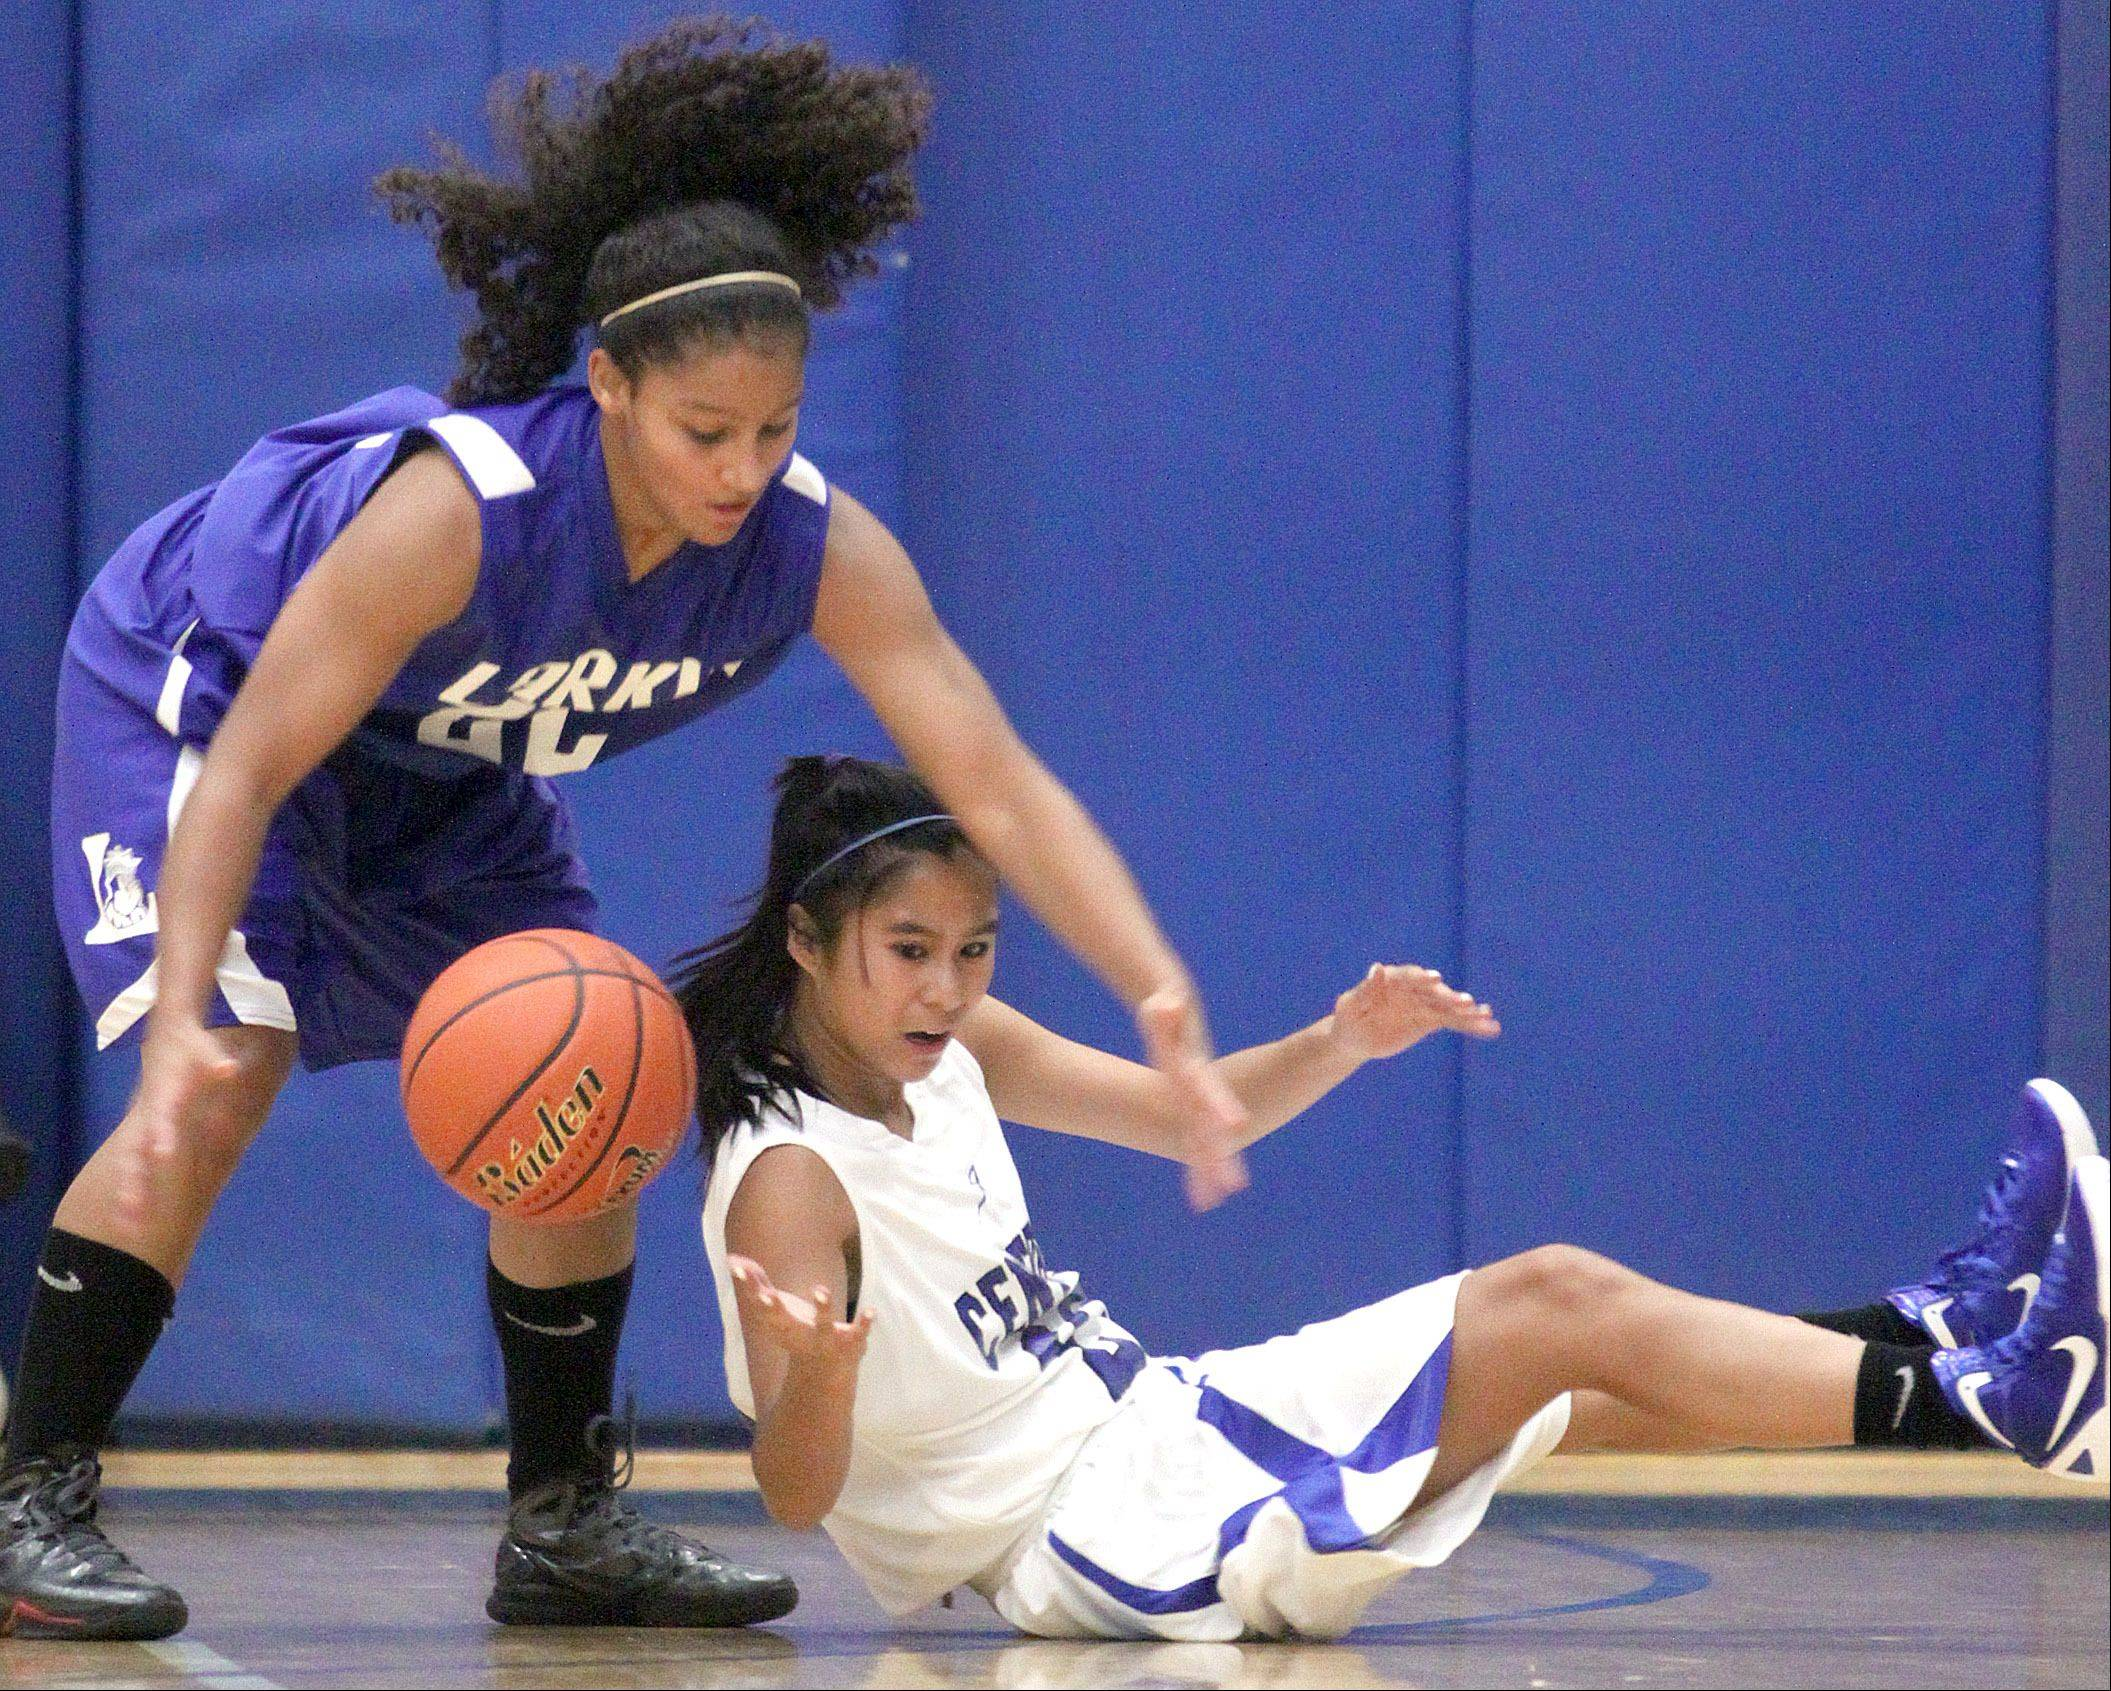 Burlington Central's Camille Dela Cruz, right, and Larkin's Victoria Patterson scramble for a loose ball during a Central High School Thanksgiving Tournament game in Burlington Friday.